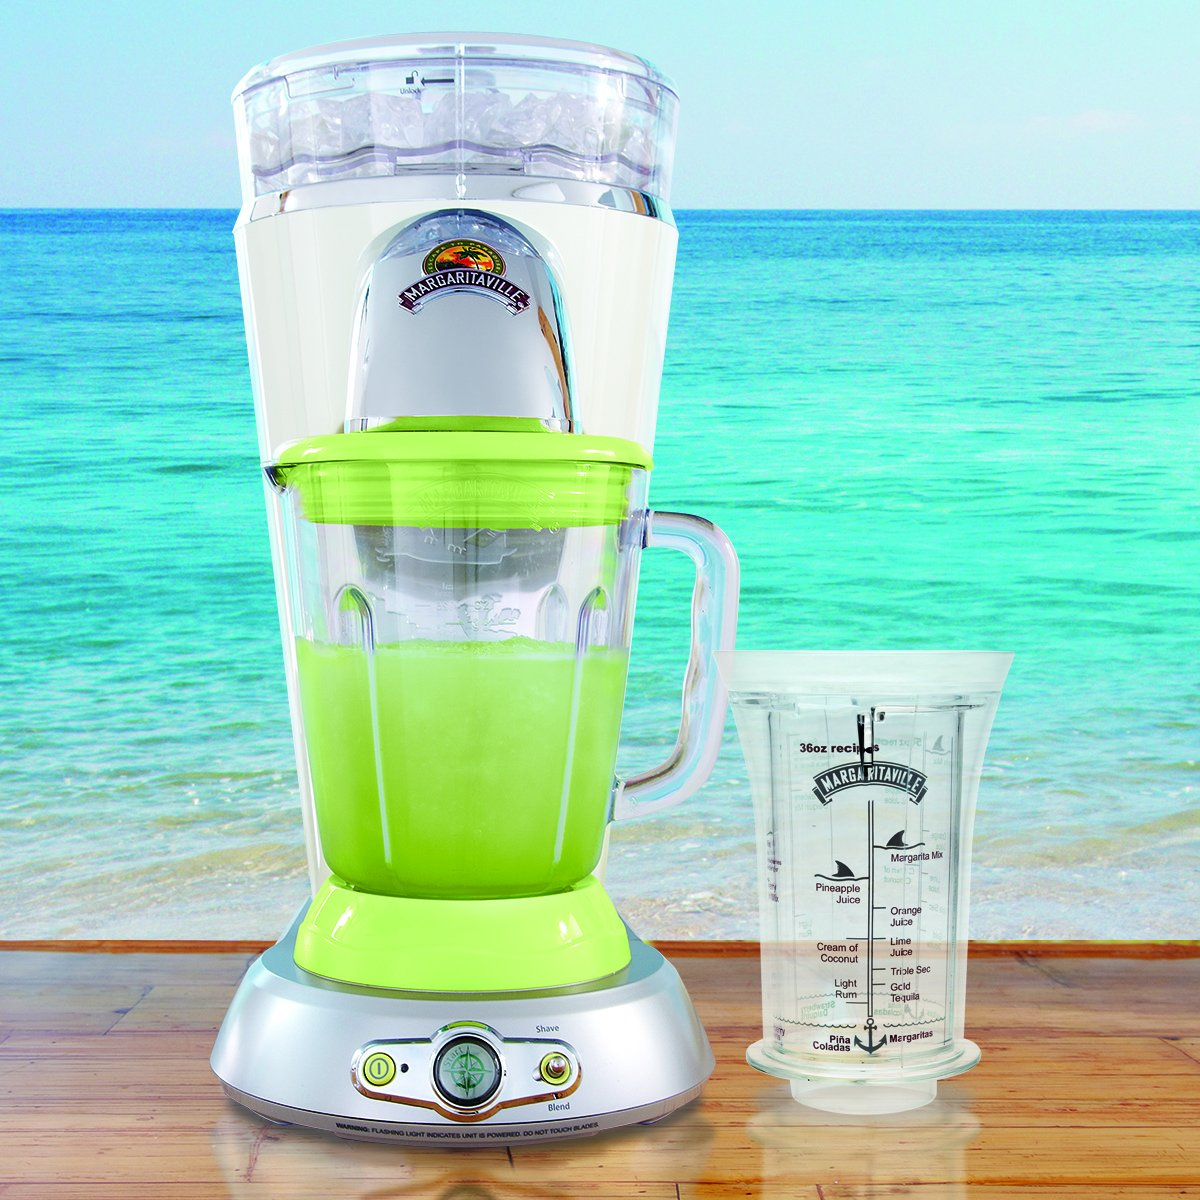 Margaritaville Bahamas Frozen Concoction Maker No-Brainer Mixer